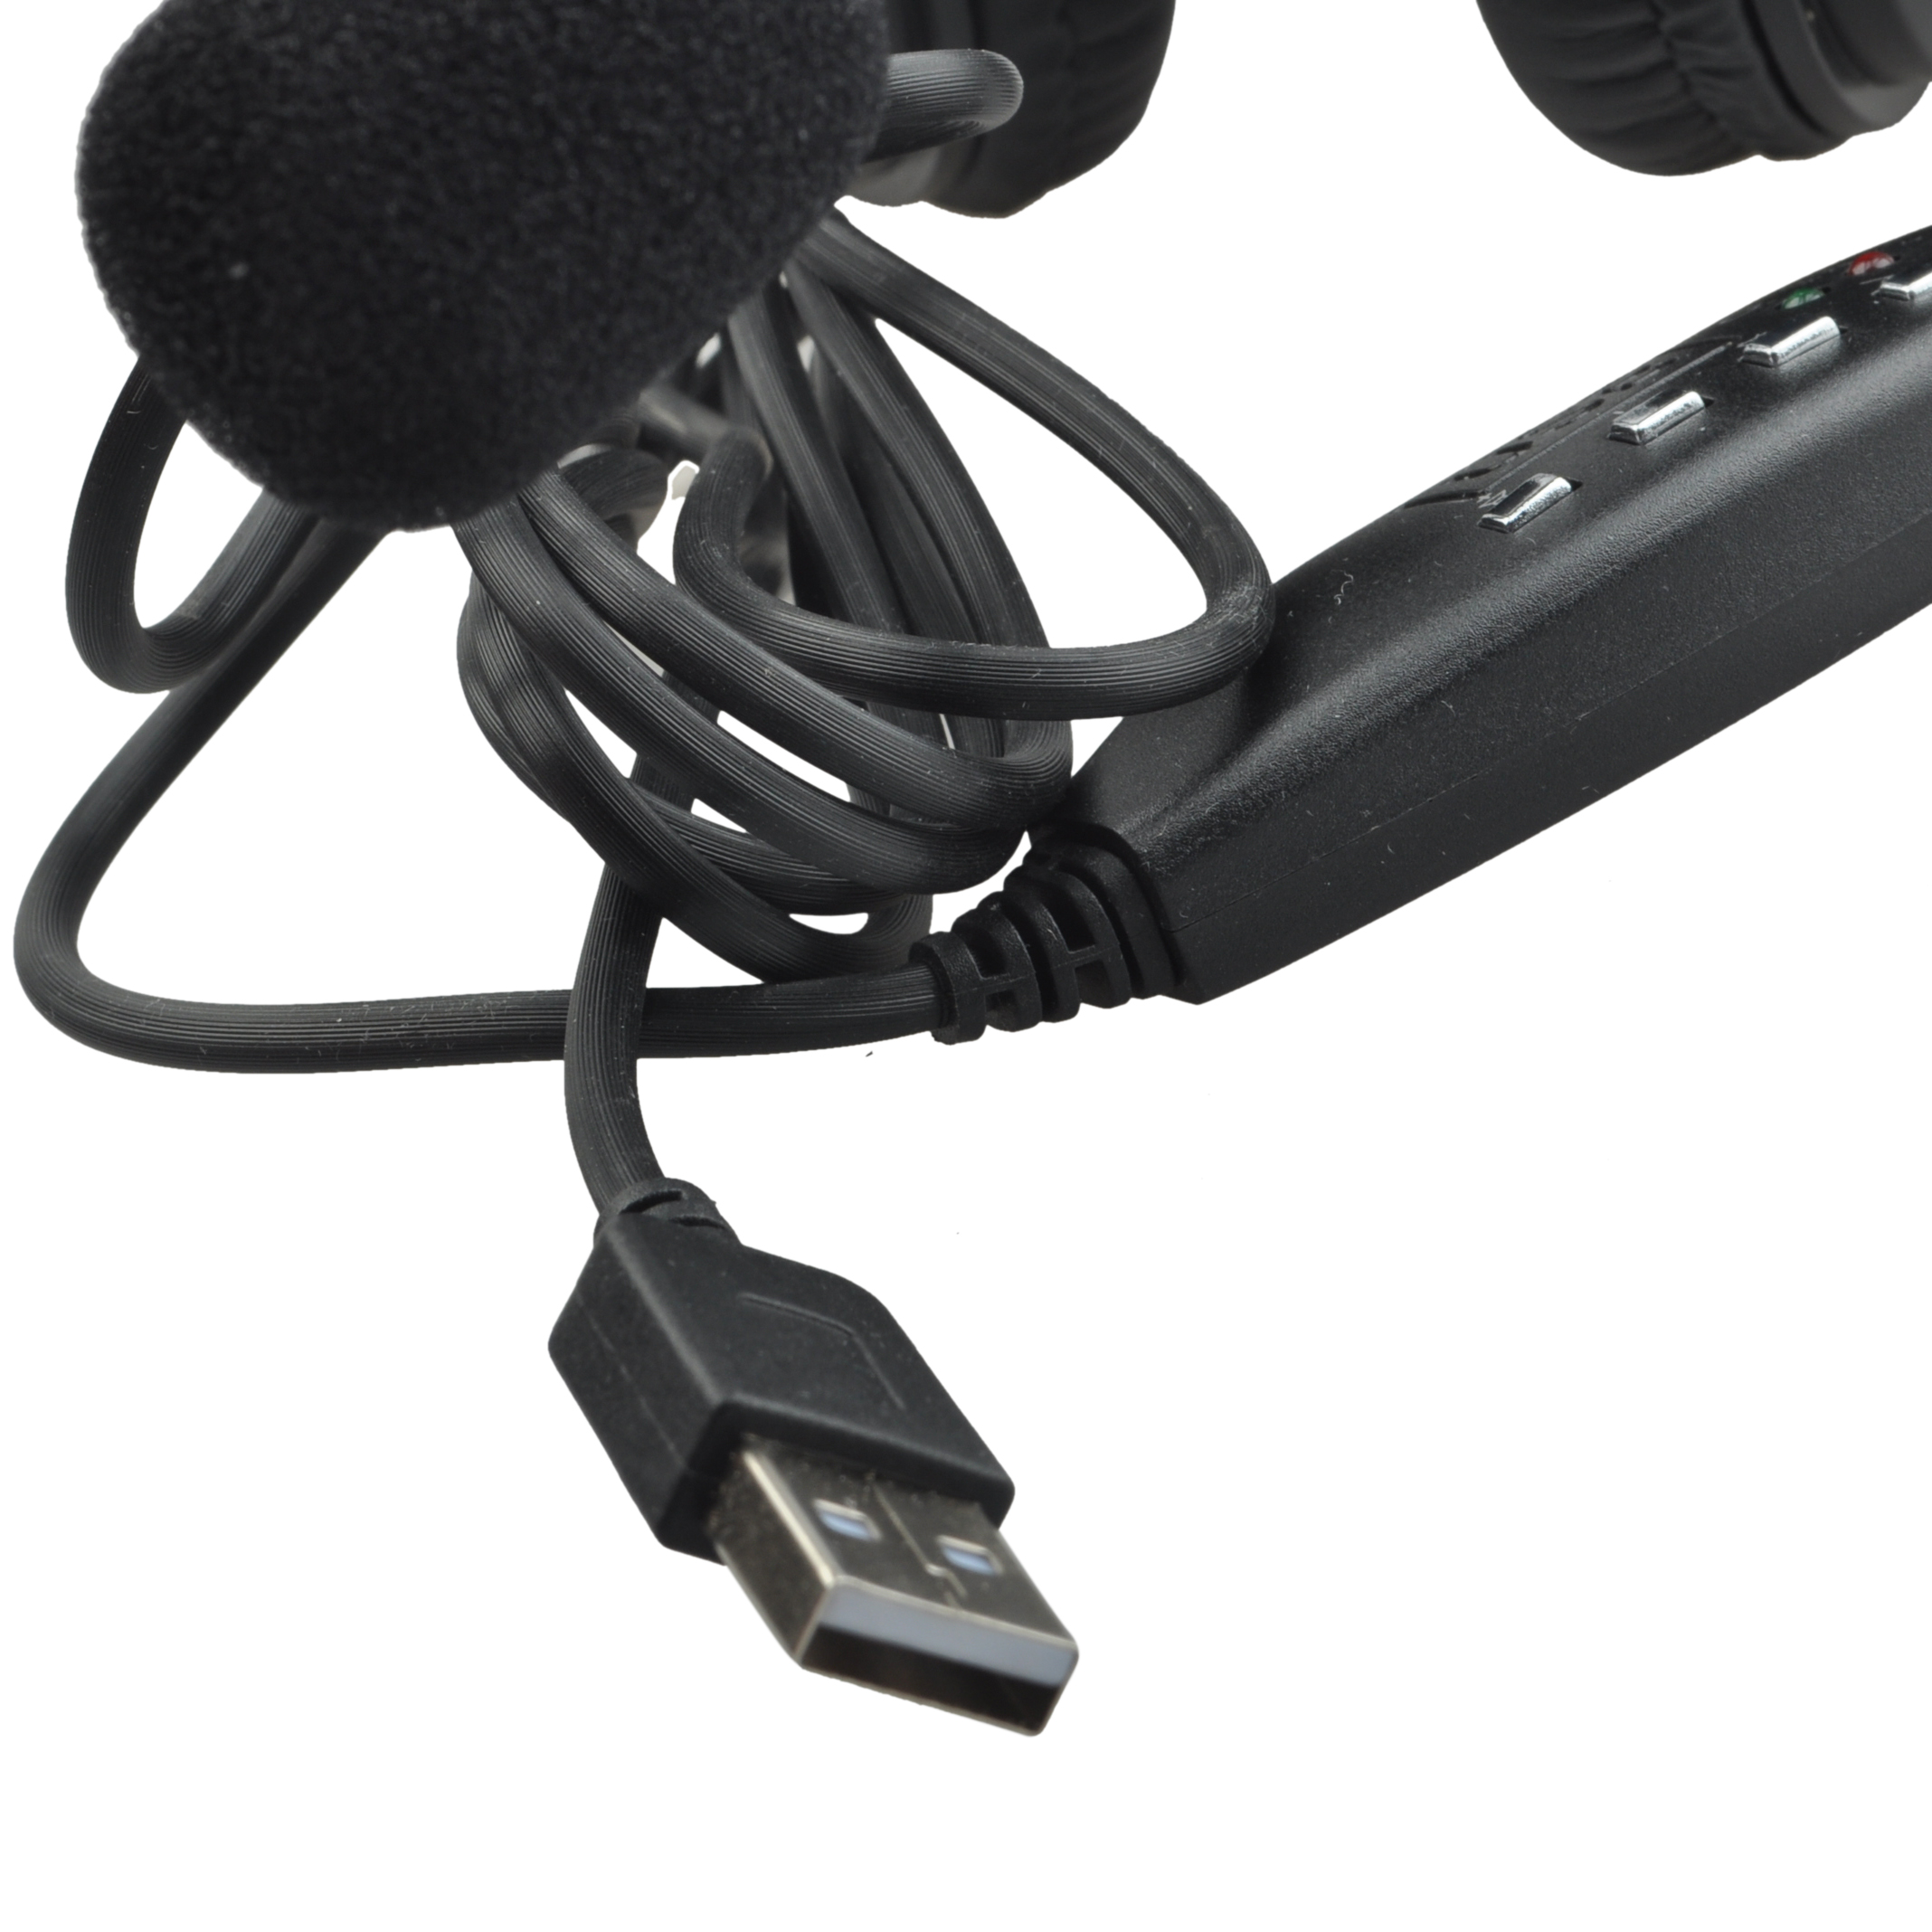 Q2 USB Stereo Headphone Earphone with MIC for Gaming Console Surround Sound PC Headset